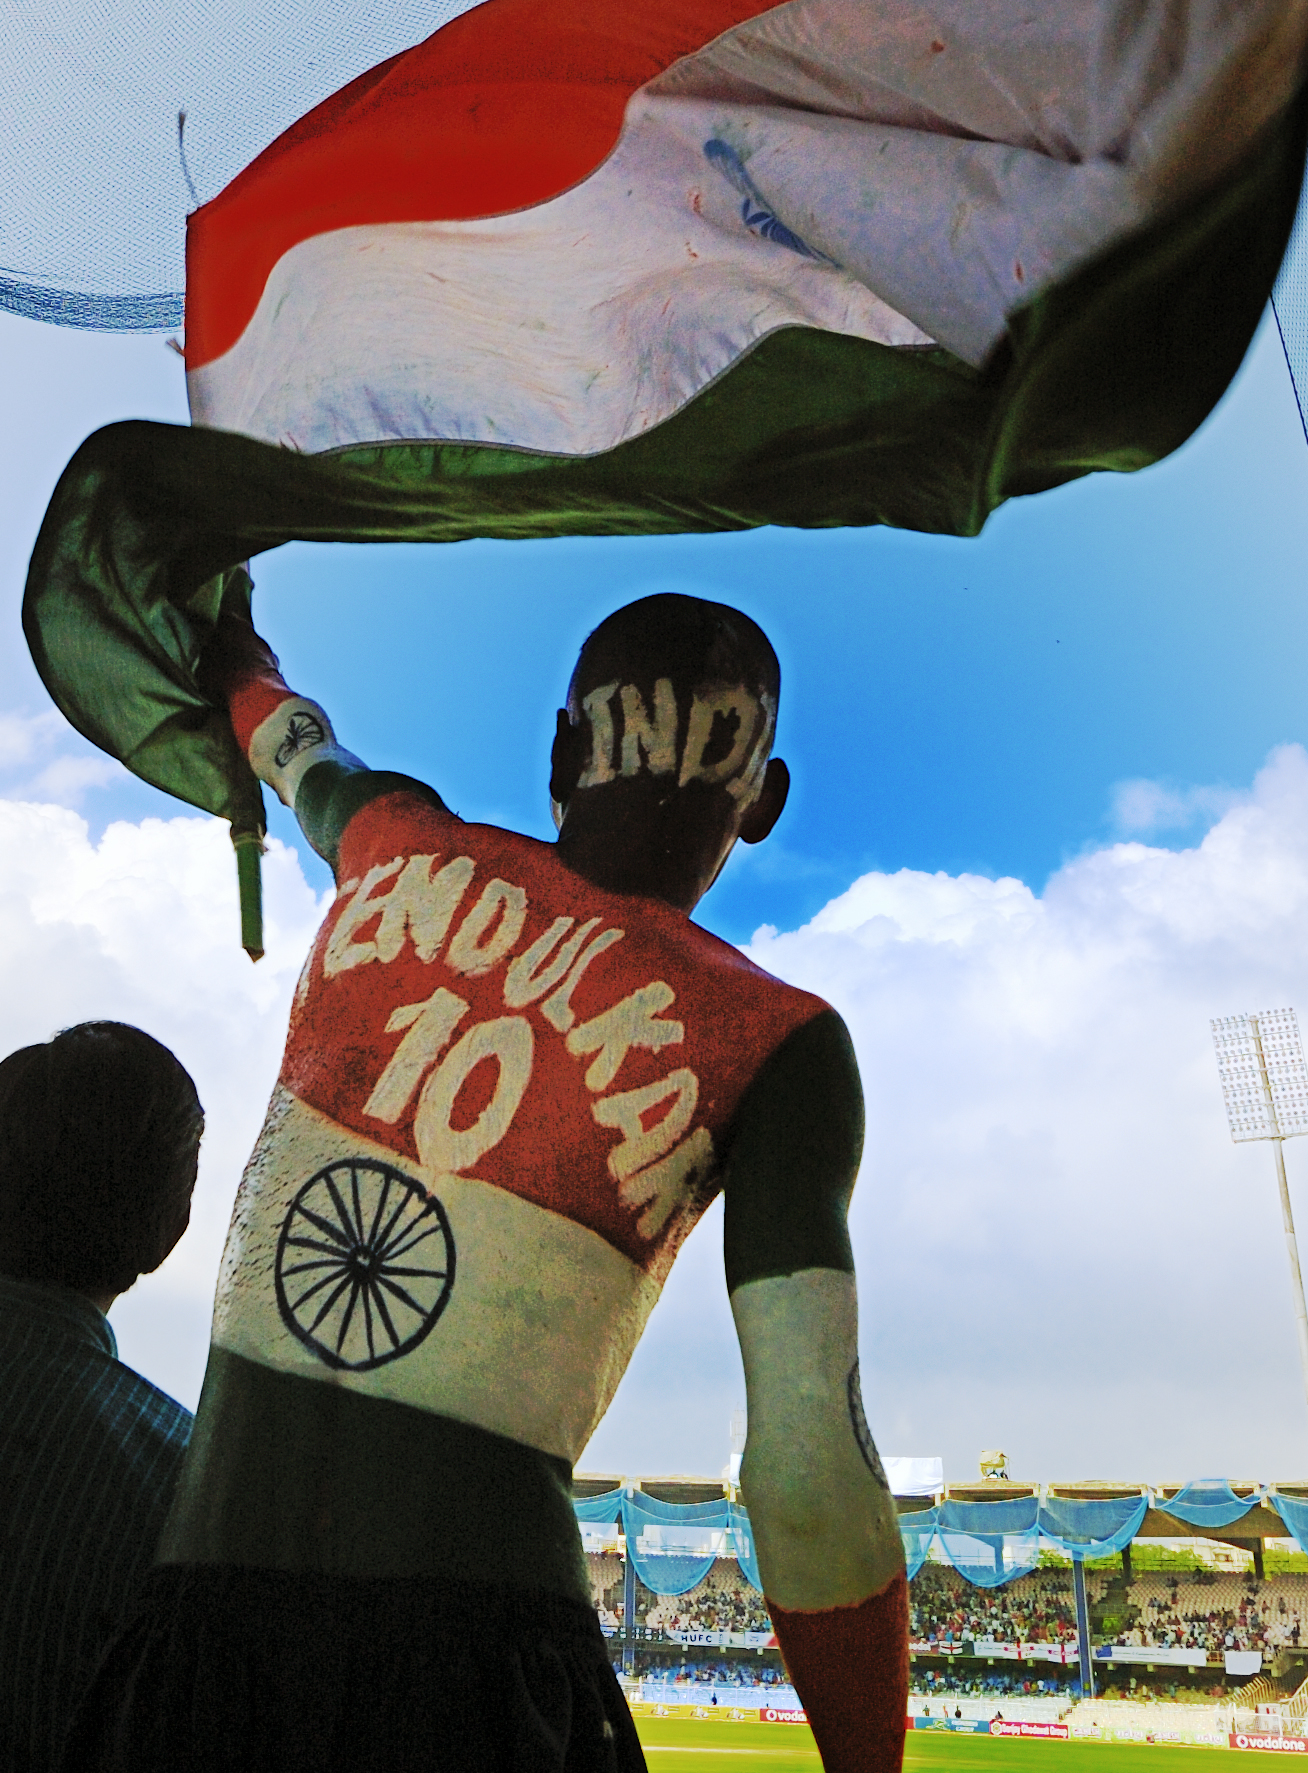 Fan of the Indian cricket team (Photo by Ekabhishek, CC-BY-2.0, accessed via Wikimedia Commons)